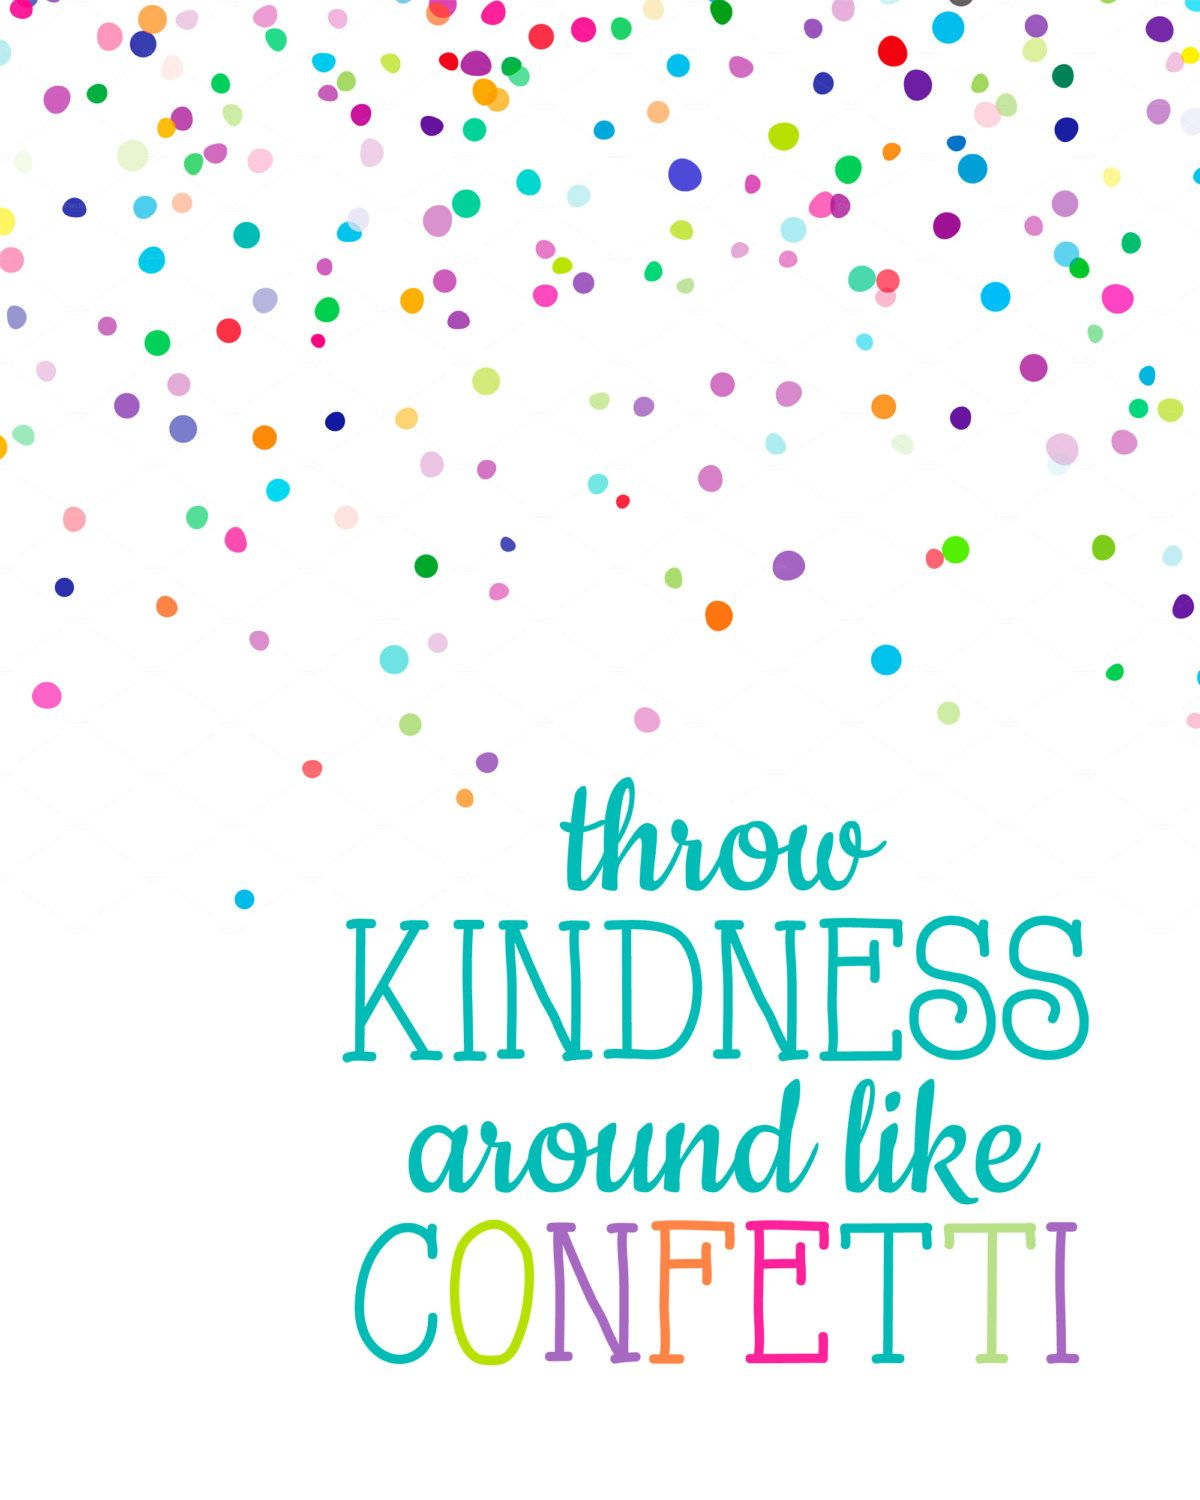 kindness quotes iphone wallpaper - photo #11